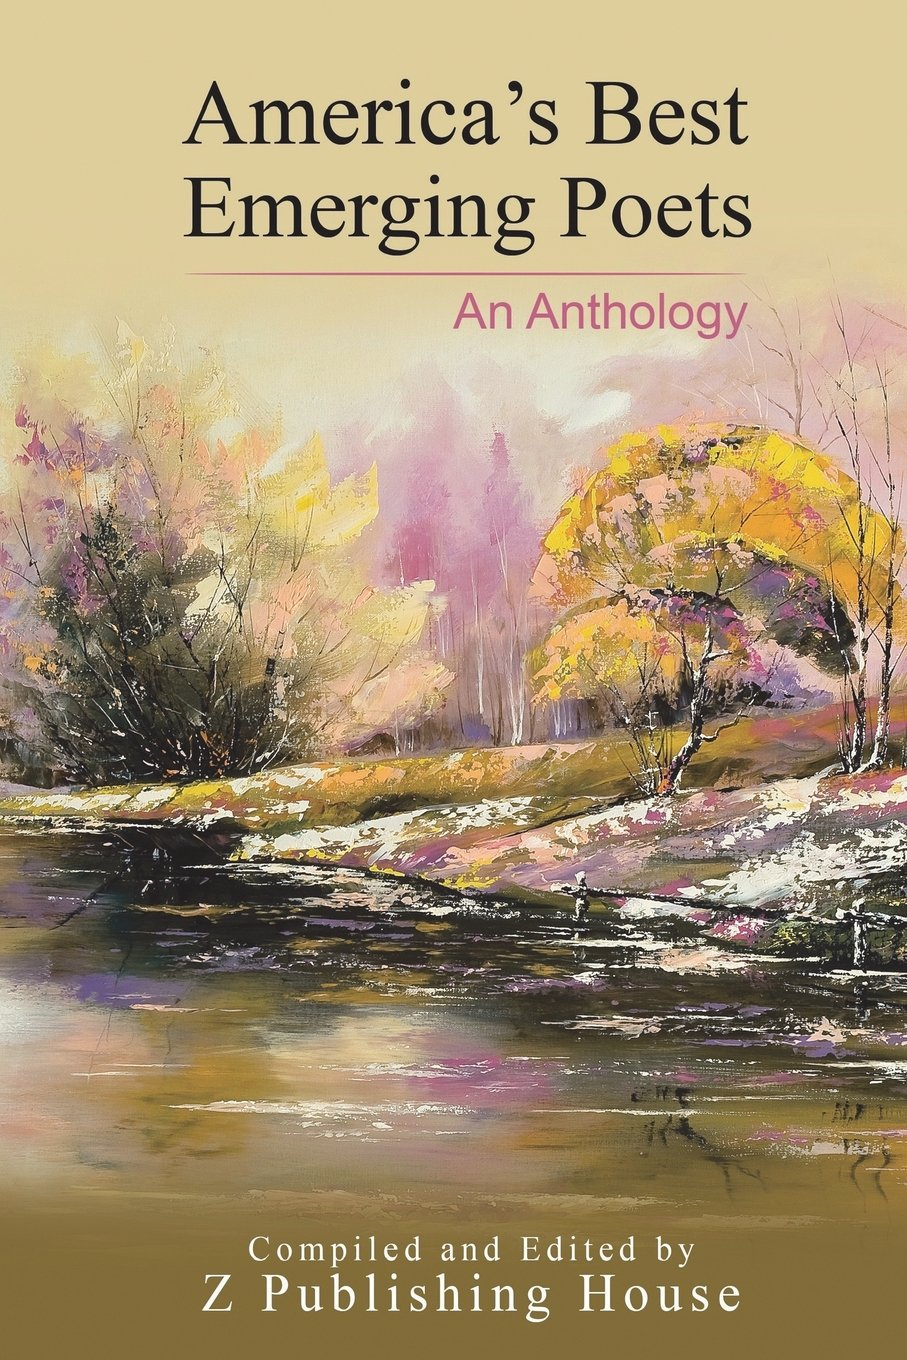 America's Best Emerging Poets: An Anthology PDF